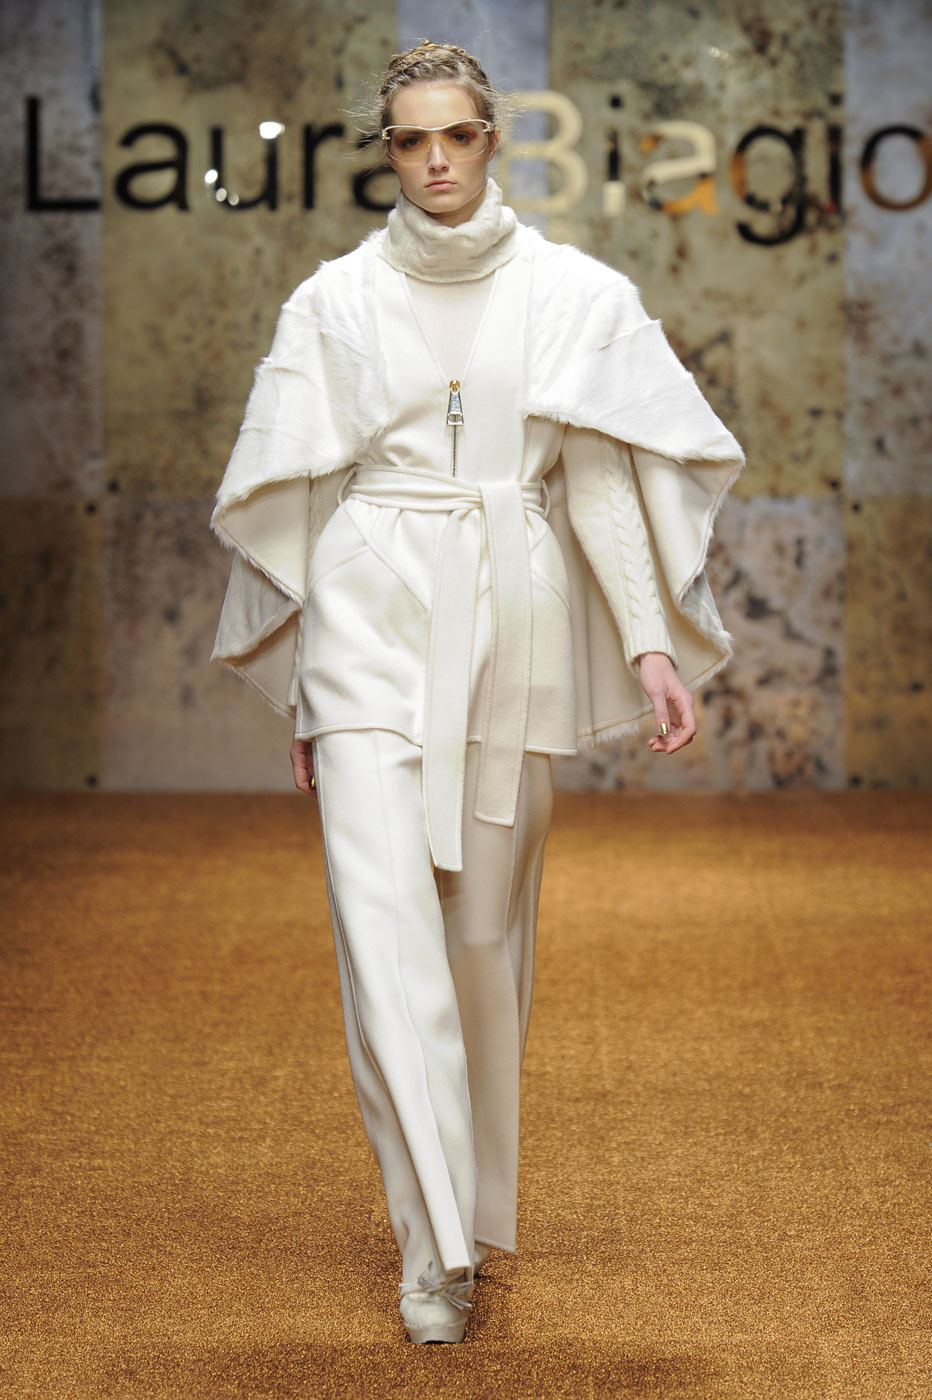 Laura Biagiotti Fall/Winter 2012